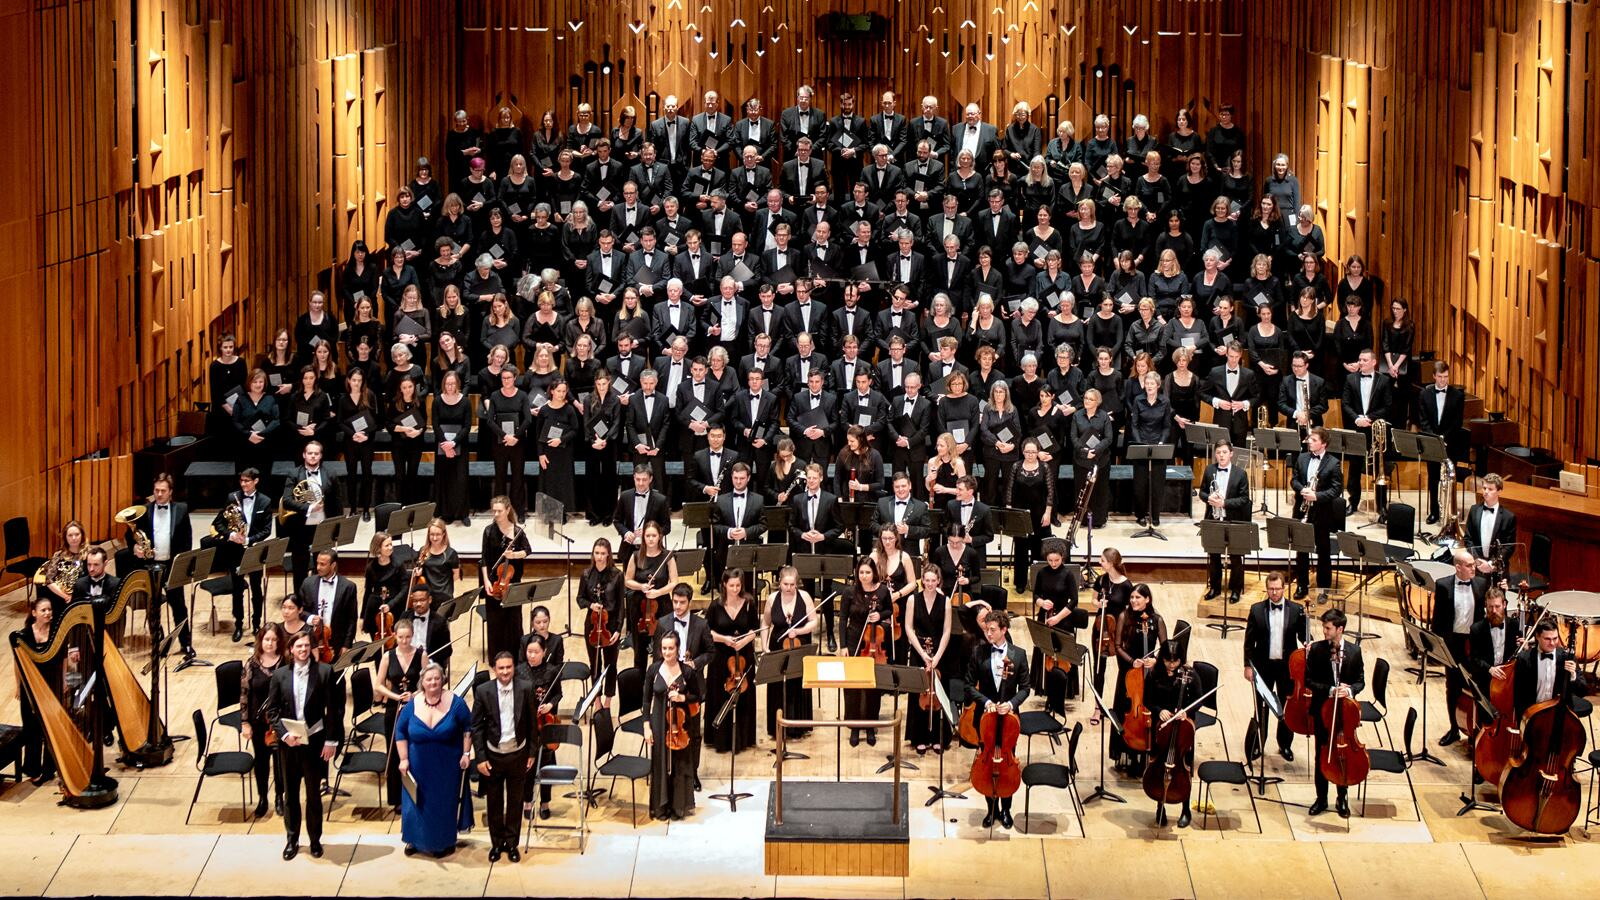 London Concert Choir performing on stage